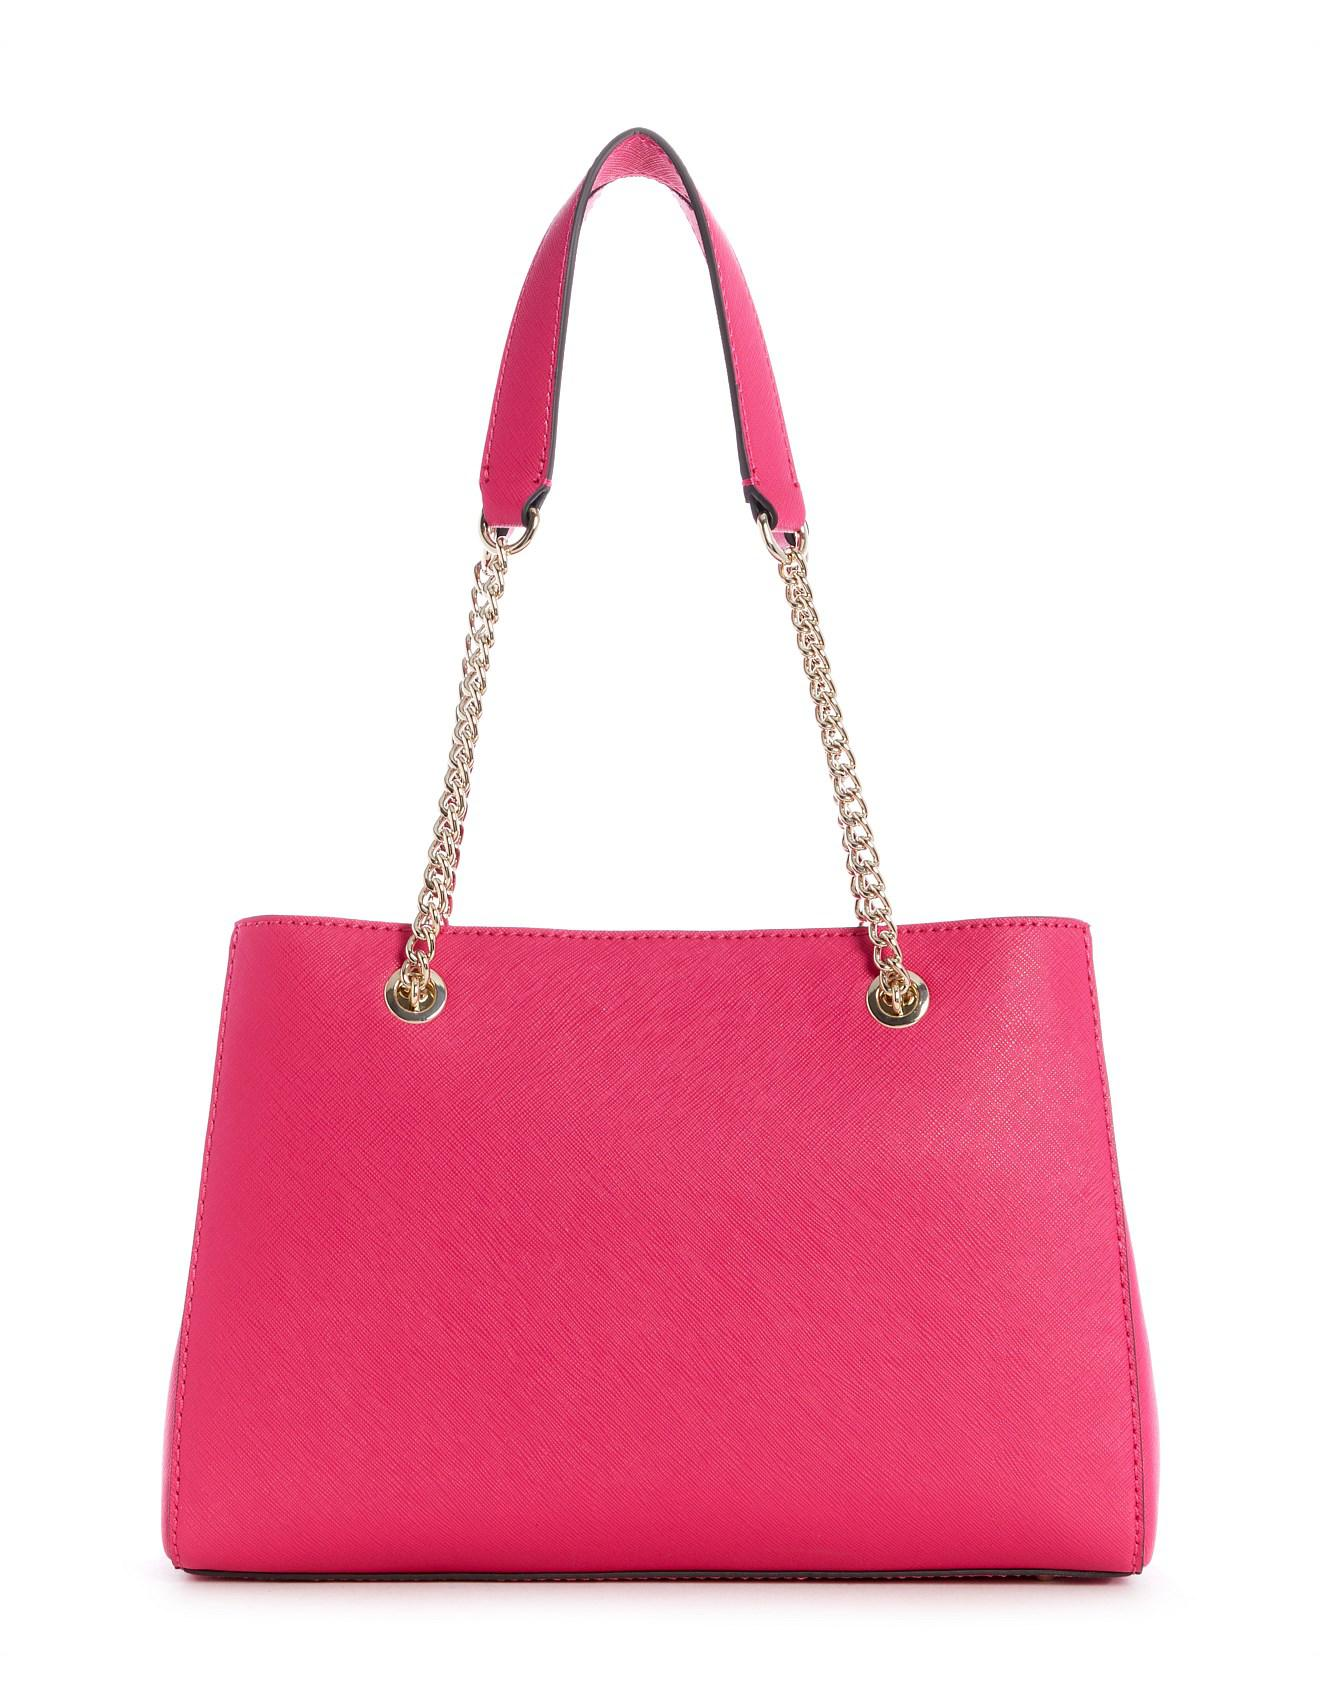 Guess Robyn Girlfriend Satchel in Pink - Lyst bd97774a53369